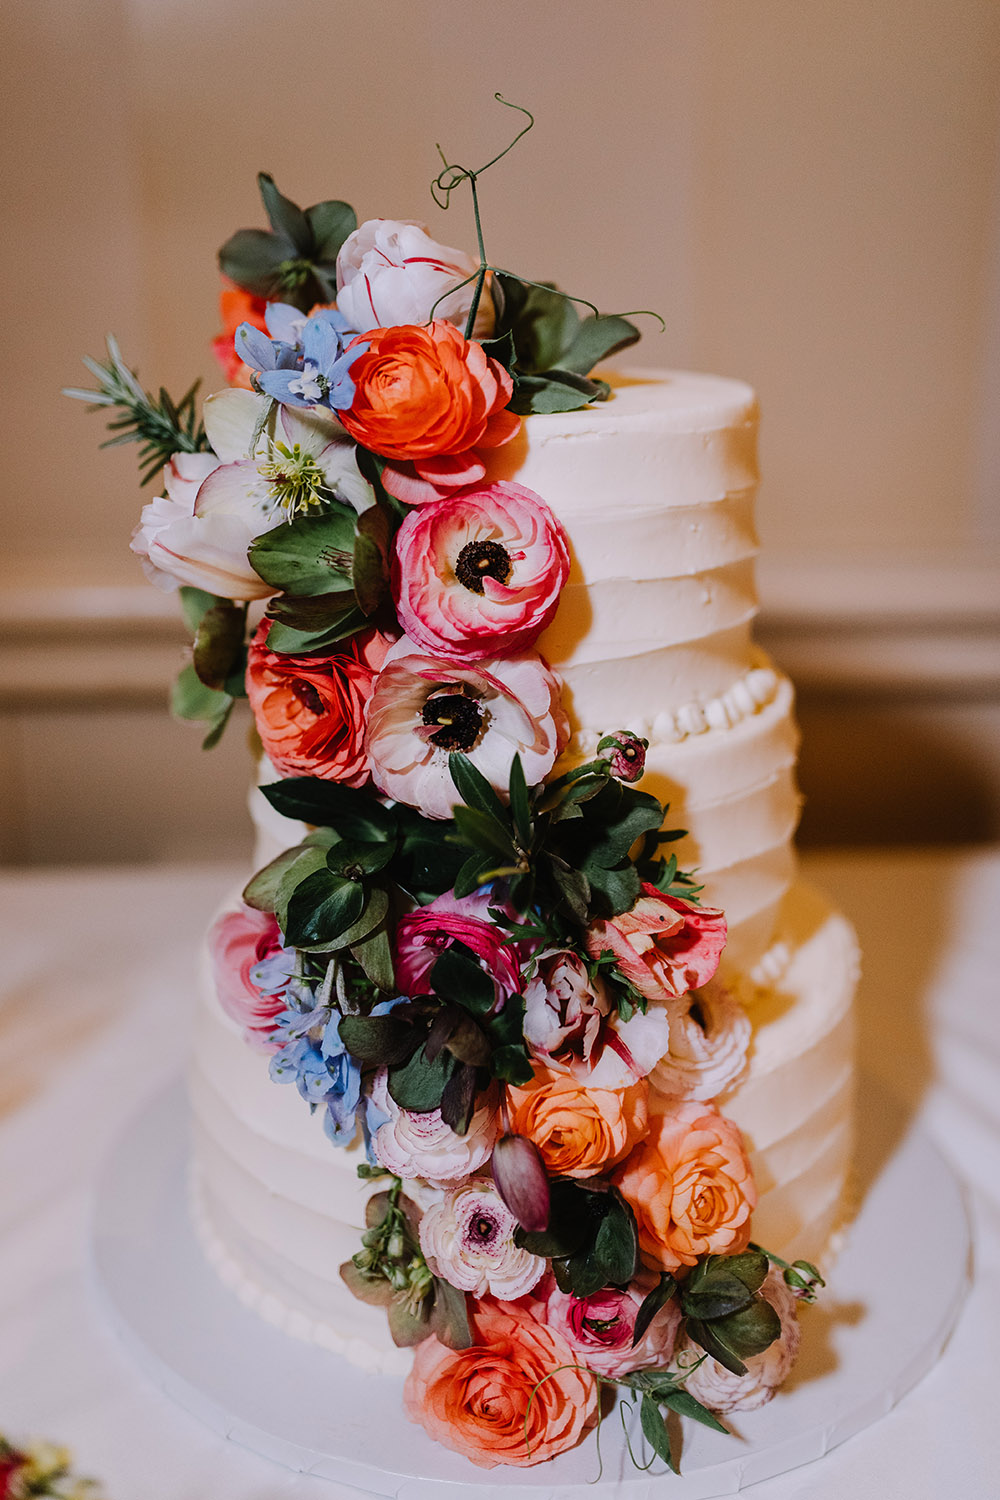 Del and Peter's wedding cake from Bywater Bakery. Photo: Ashley Biltz